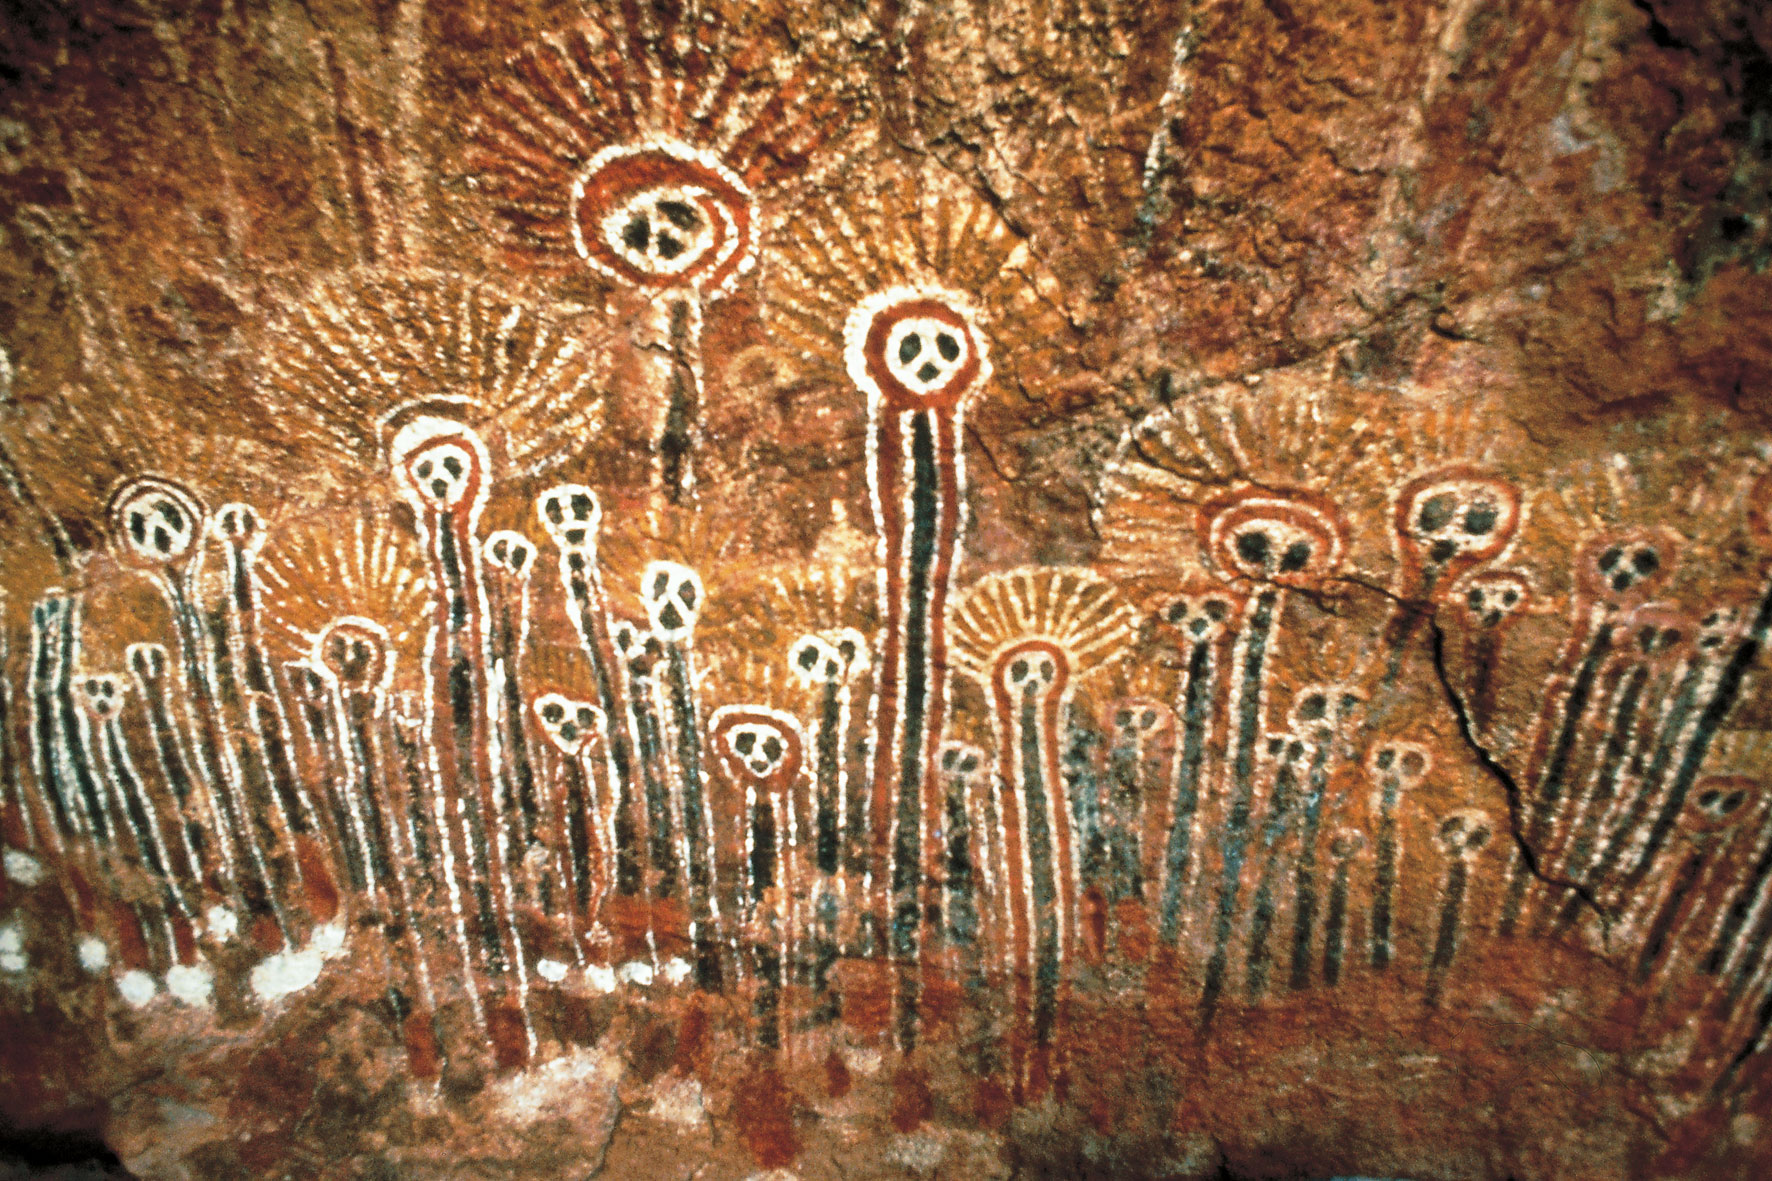 Outback Safari | Nourlangie Rock Art, Kakadu, Northern Territory